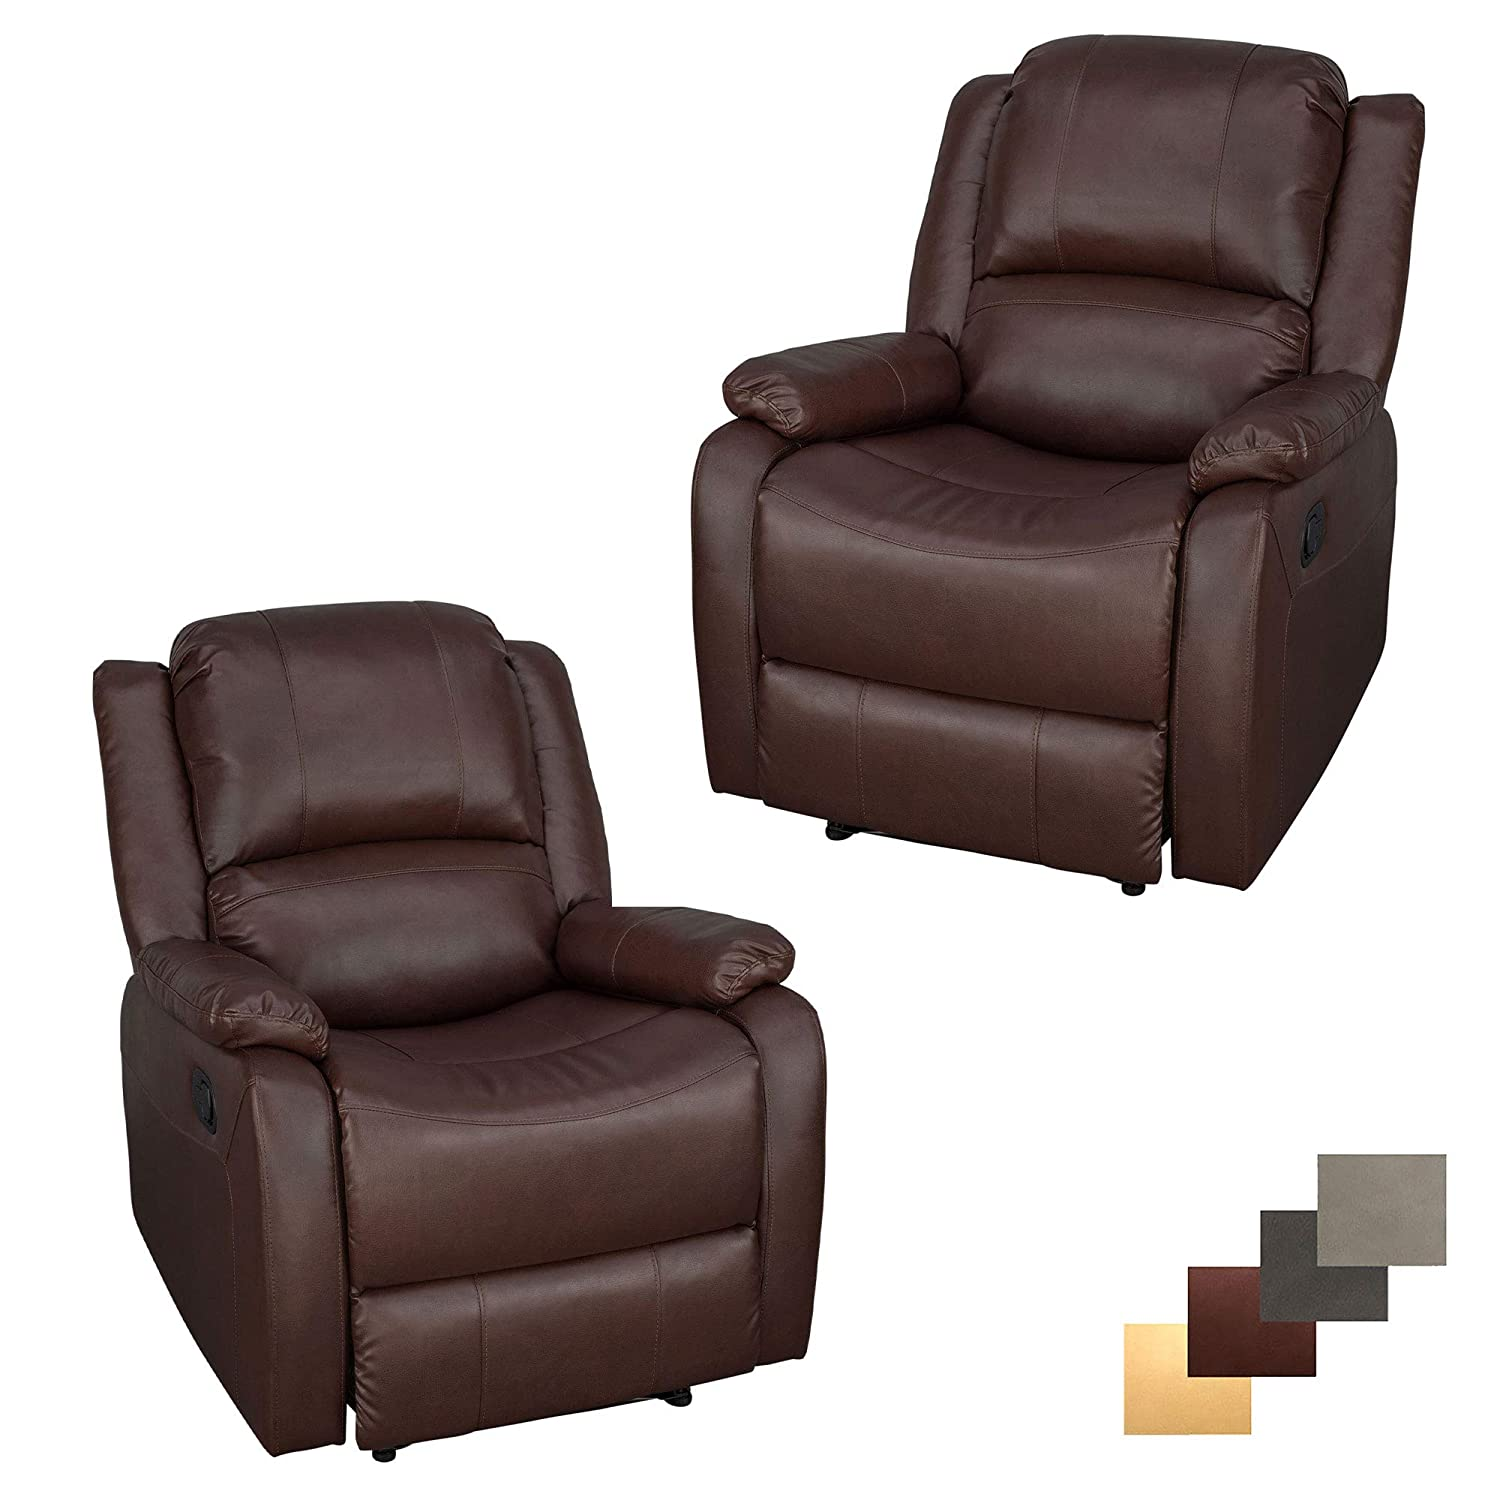 Rv Chairs Recliners >> Set Of 2 Recpro Charles Collection 30 Zero Wall Rv Recliner Wall Hugger Recliner Rv Living Room Slideout Chair Rv Furniture Rv Chair